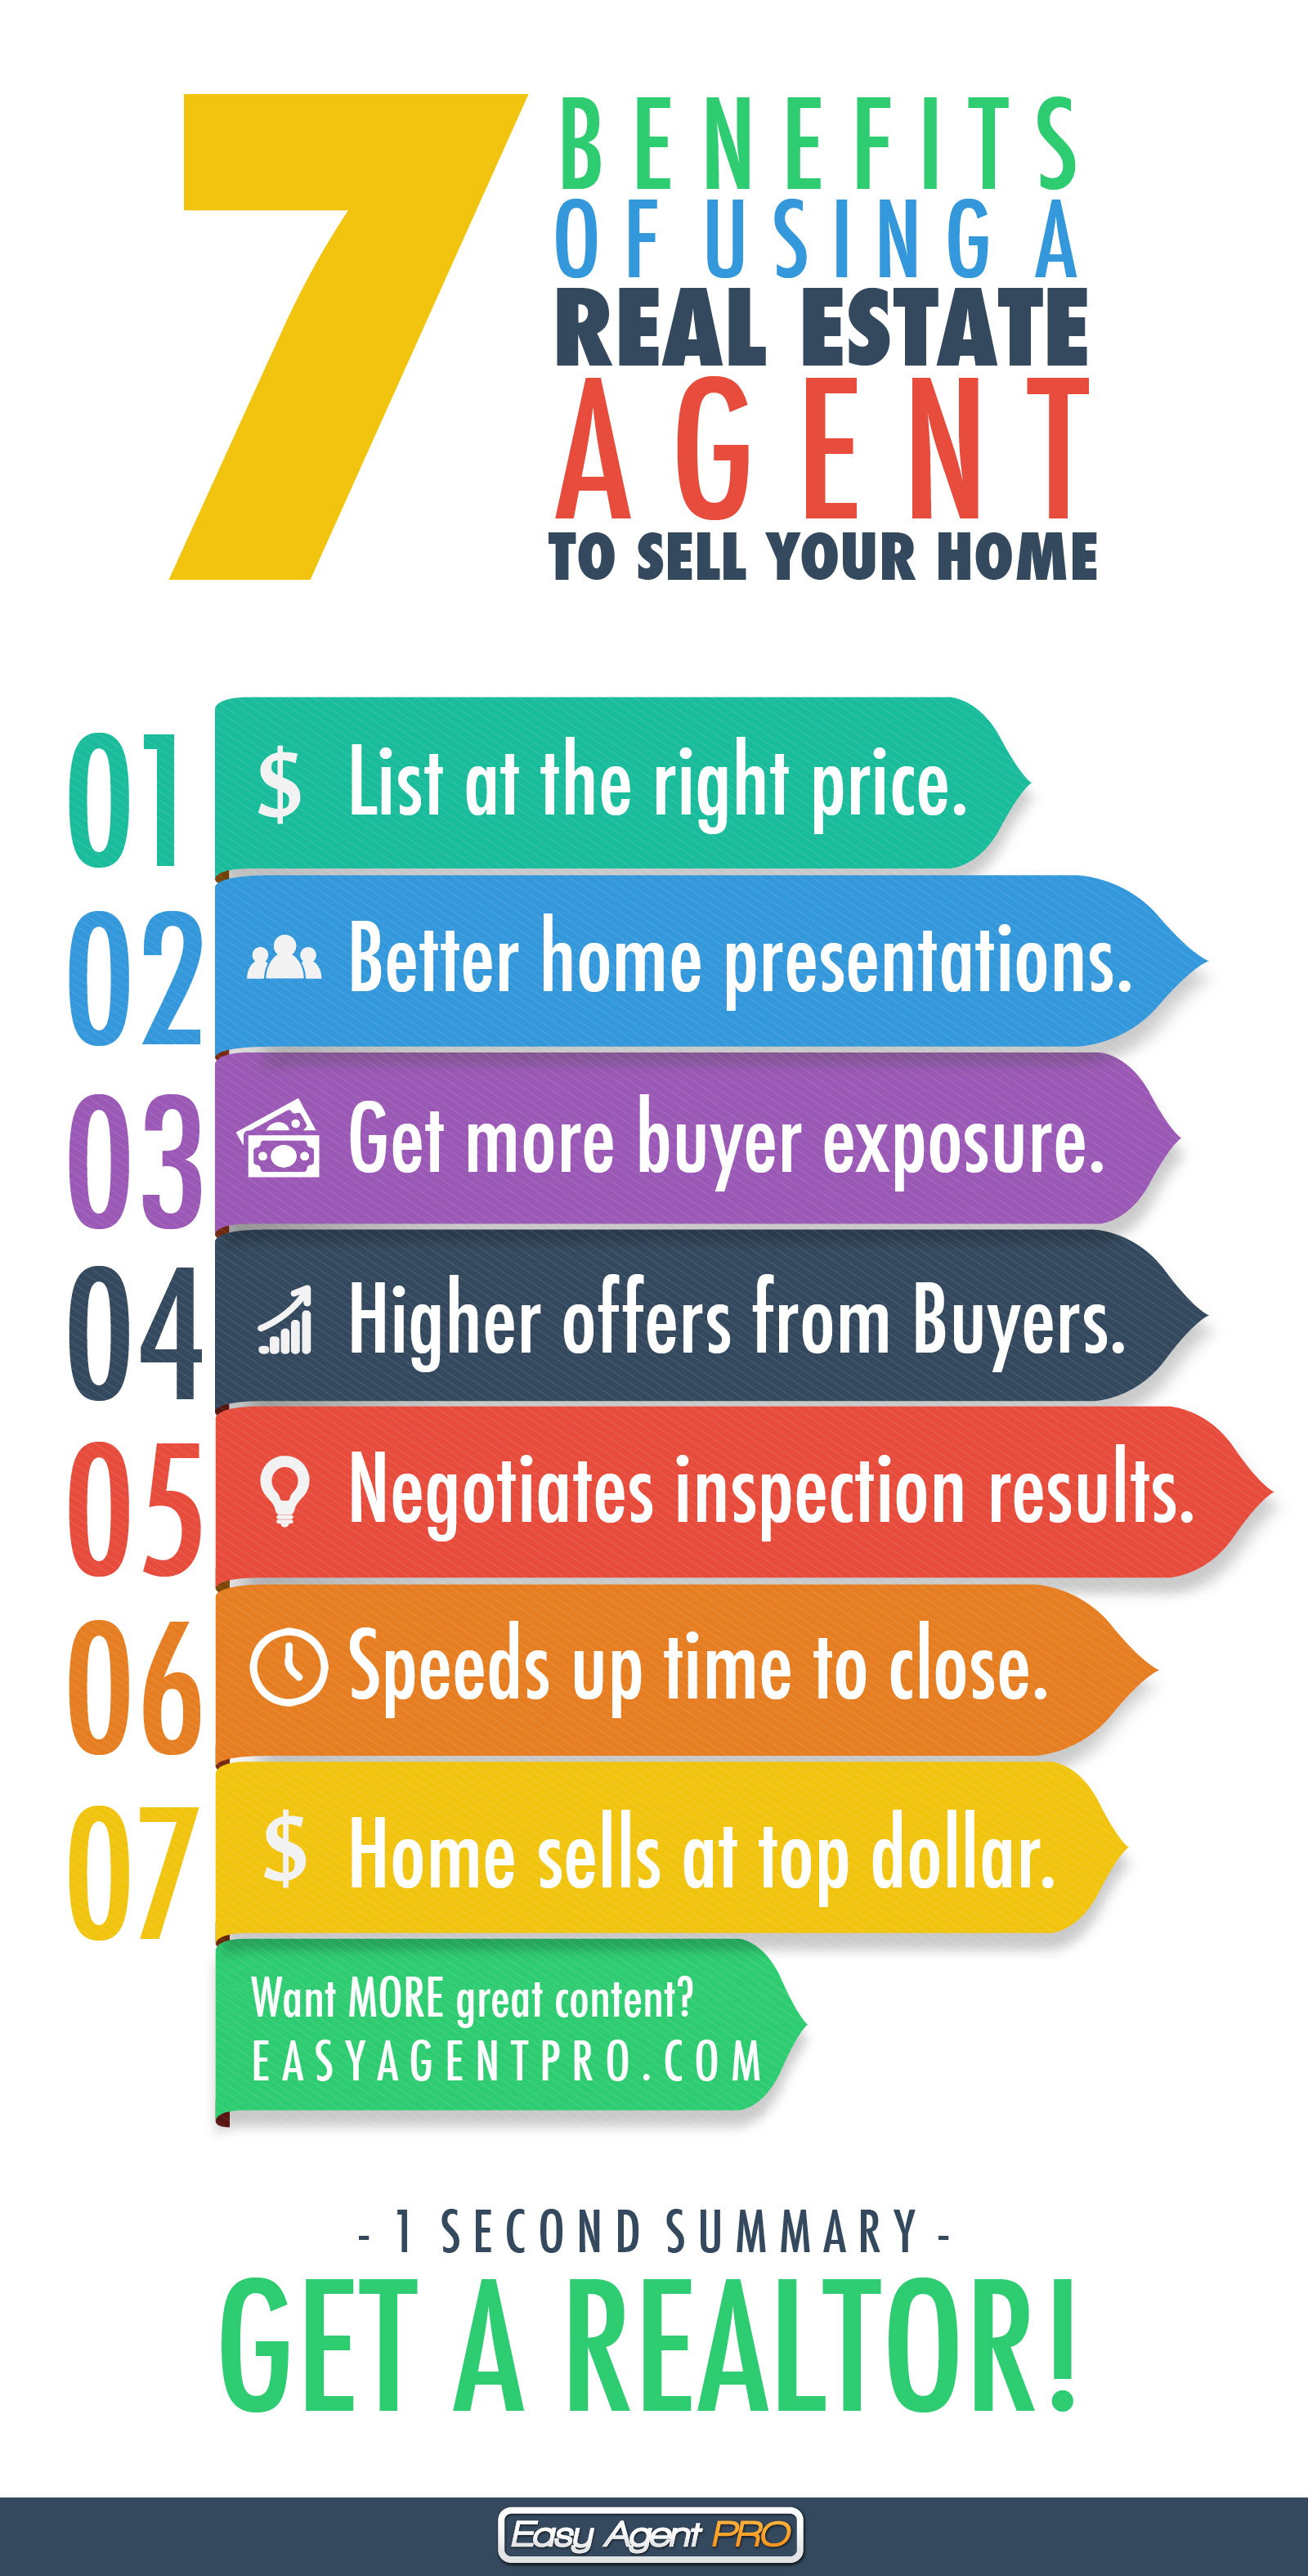 7 Reasons To Use A Real Estate Agent To Sell Your Home